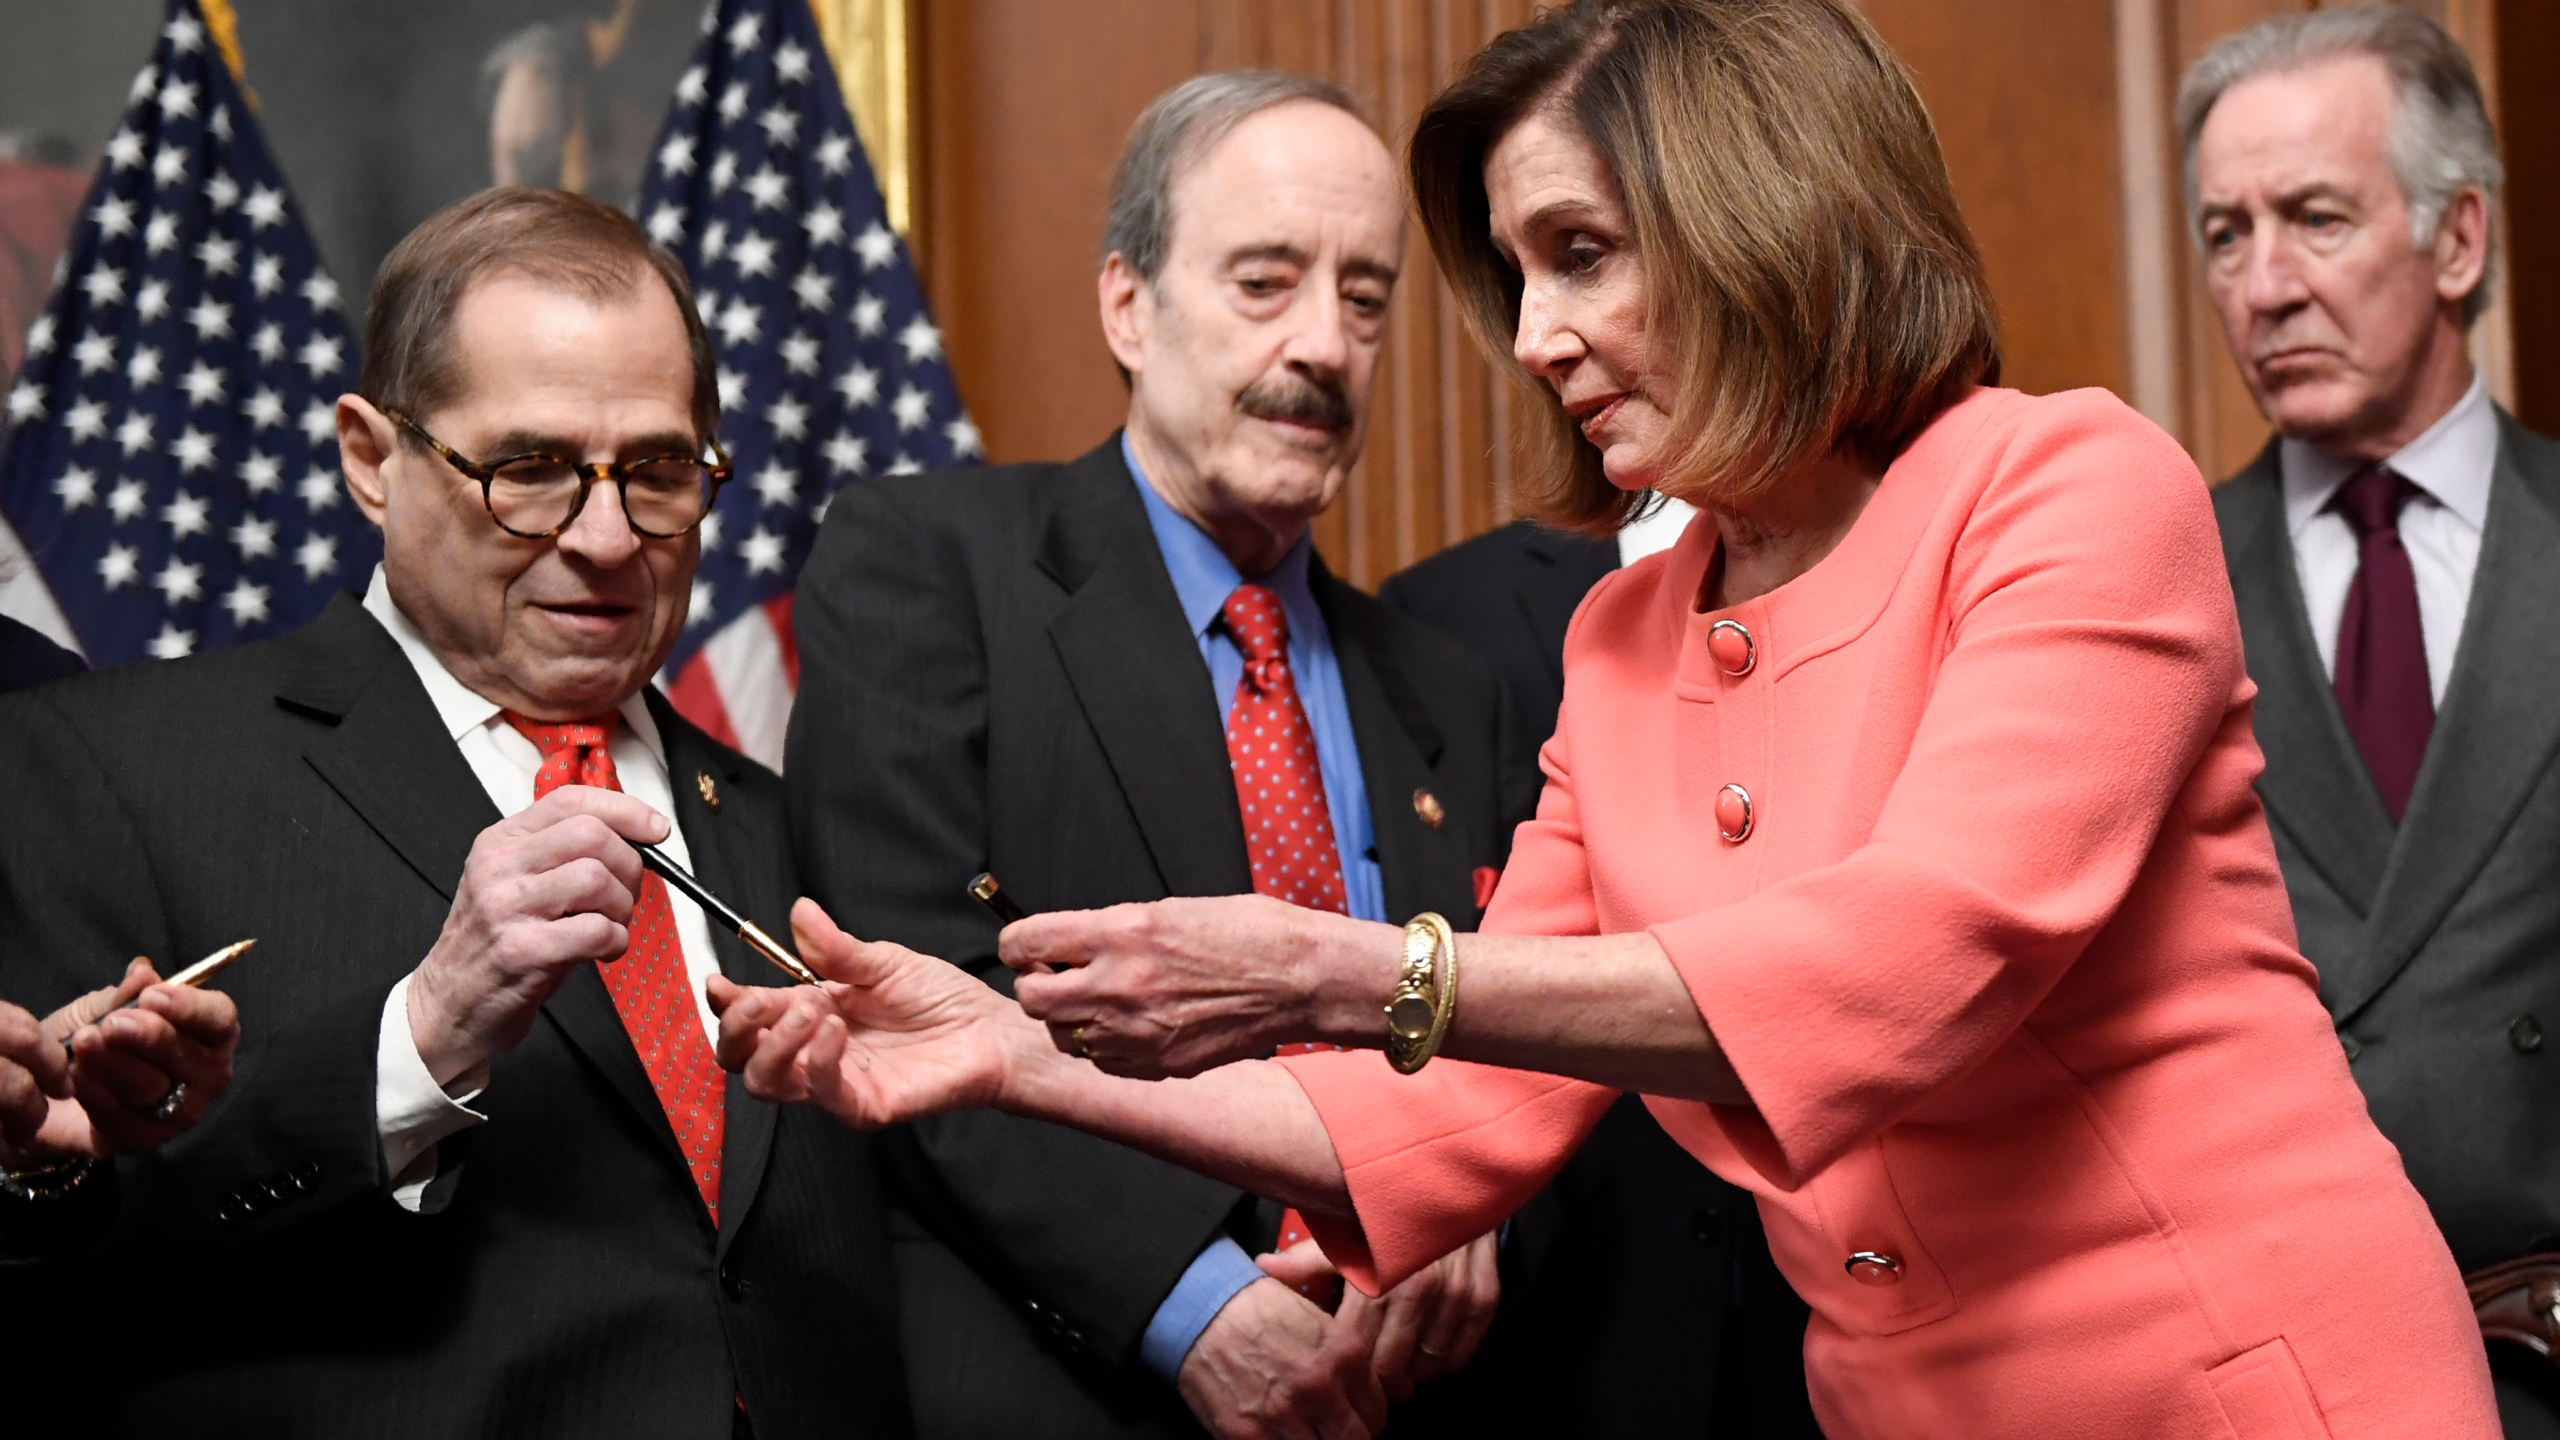 Jerrold Nadler, Eliot Engel, Richard Neal, Nancy Pelosi